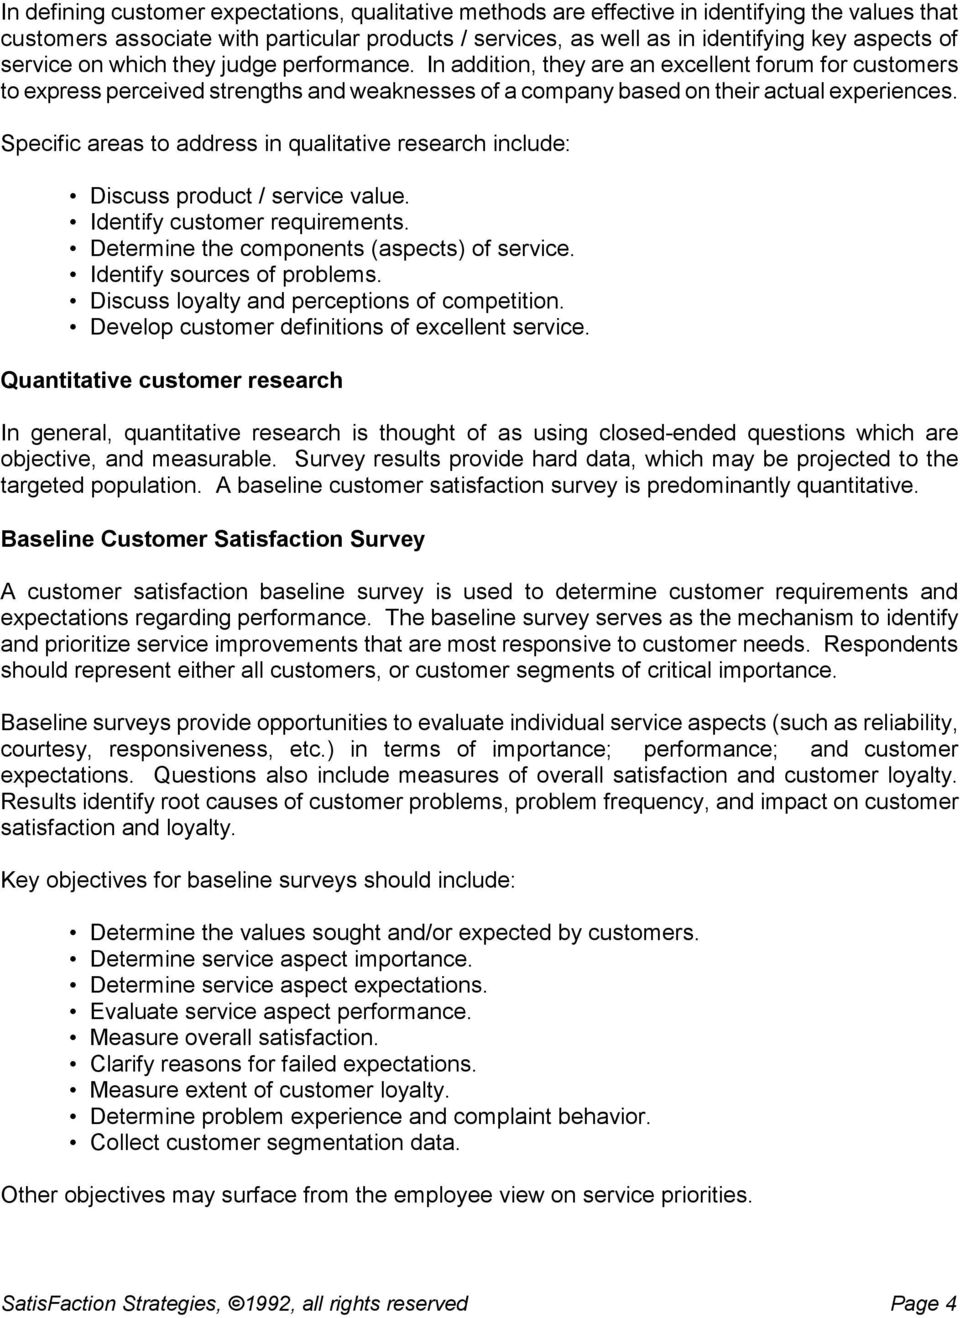 Specific areas to address in qualitative research include: Discuss product / service value. Identify customer requirements. Determine the components (aspects) of service. Identify sources of problems.